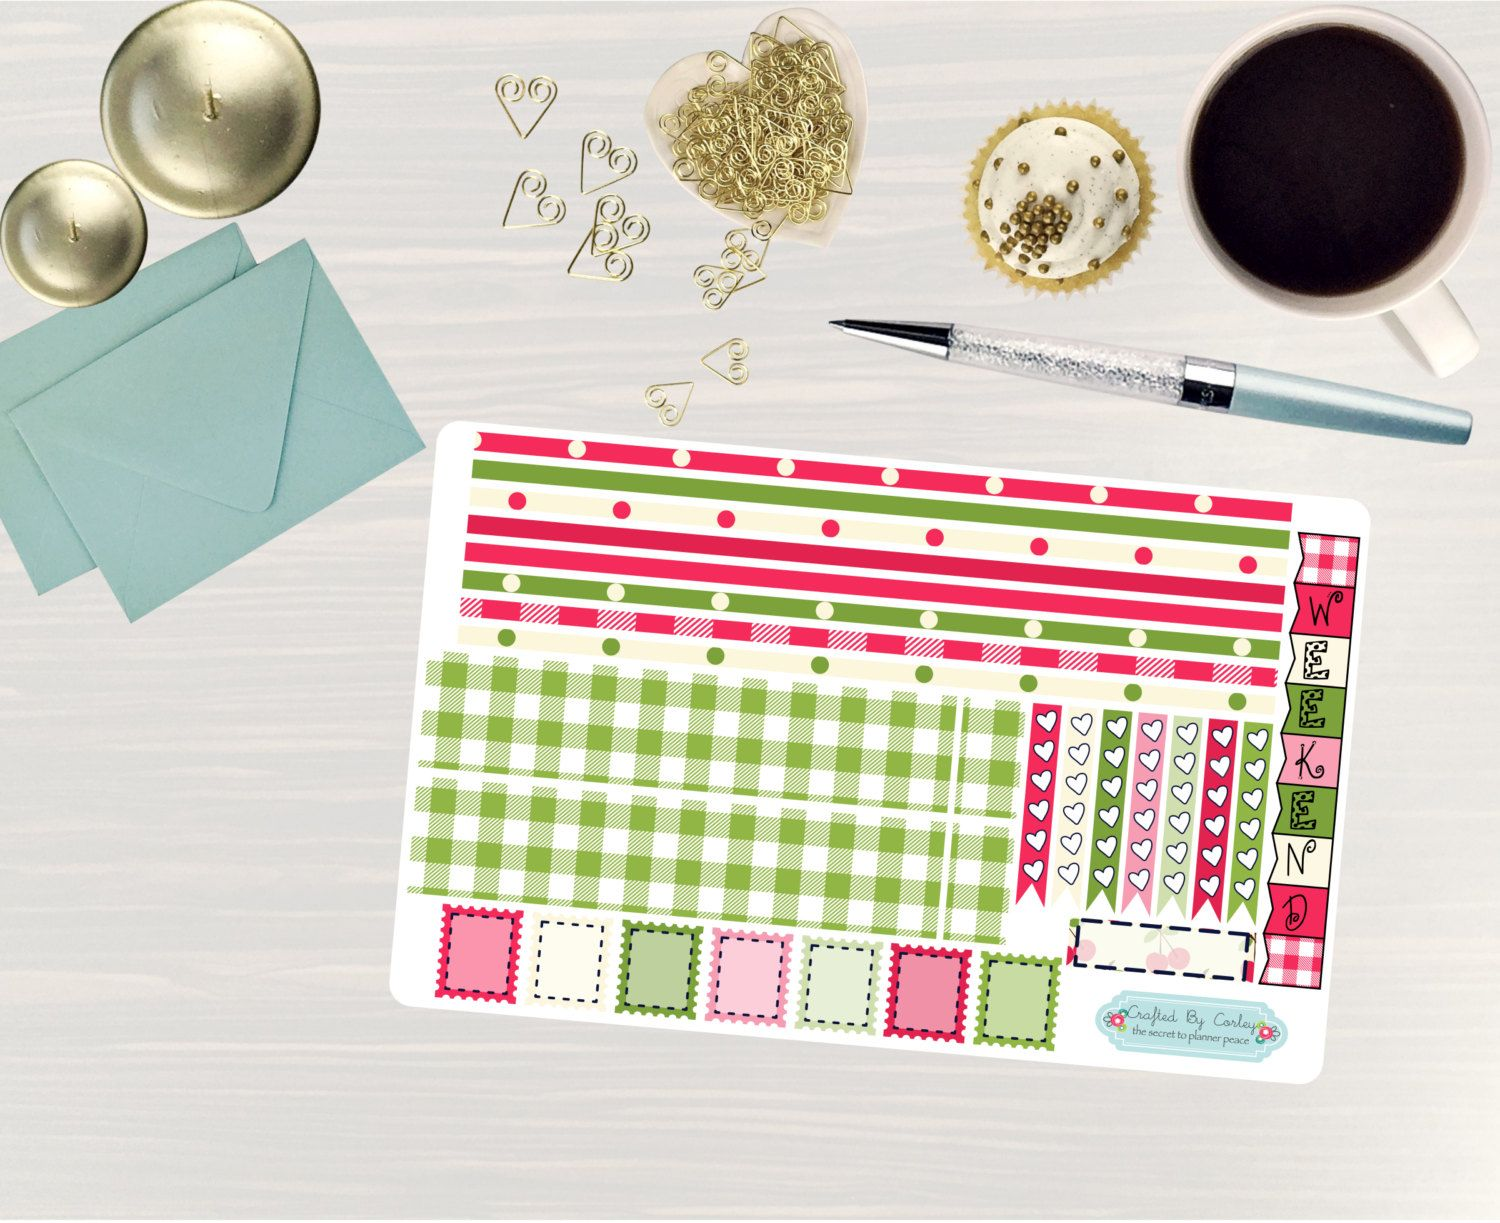 Available at CraftedByCorley on Etsy: Cherry Delight - Transform My Planner - Erin Condren Horizontal Planner and More